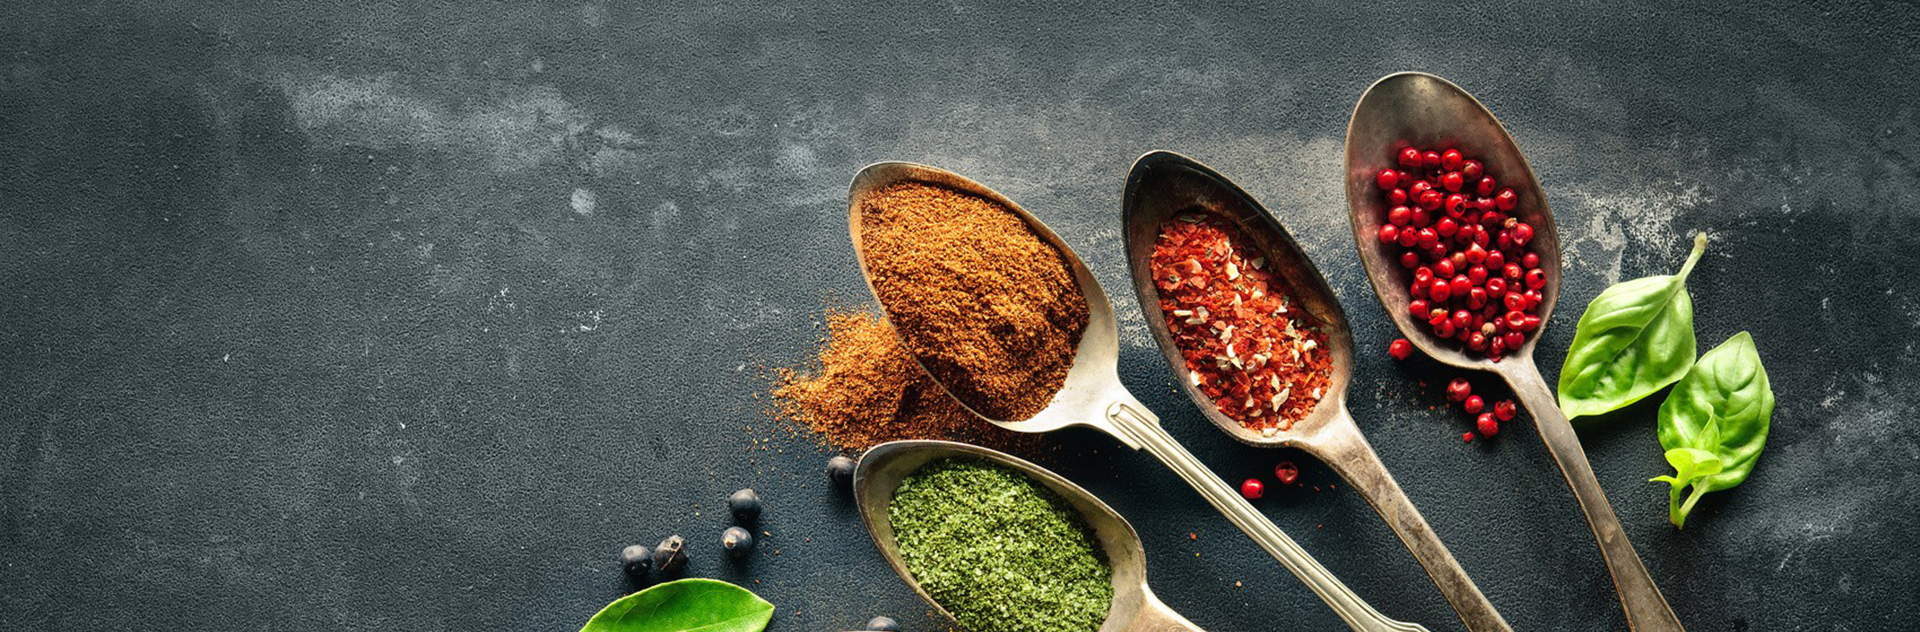 spice pepper herb food background  powder  spices  cooking